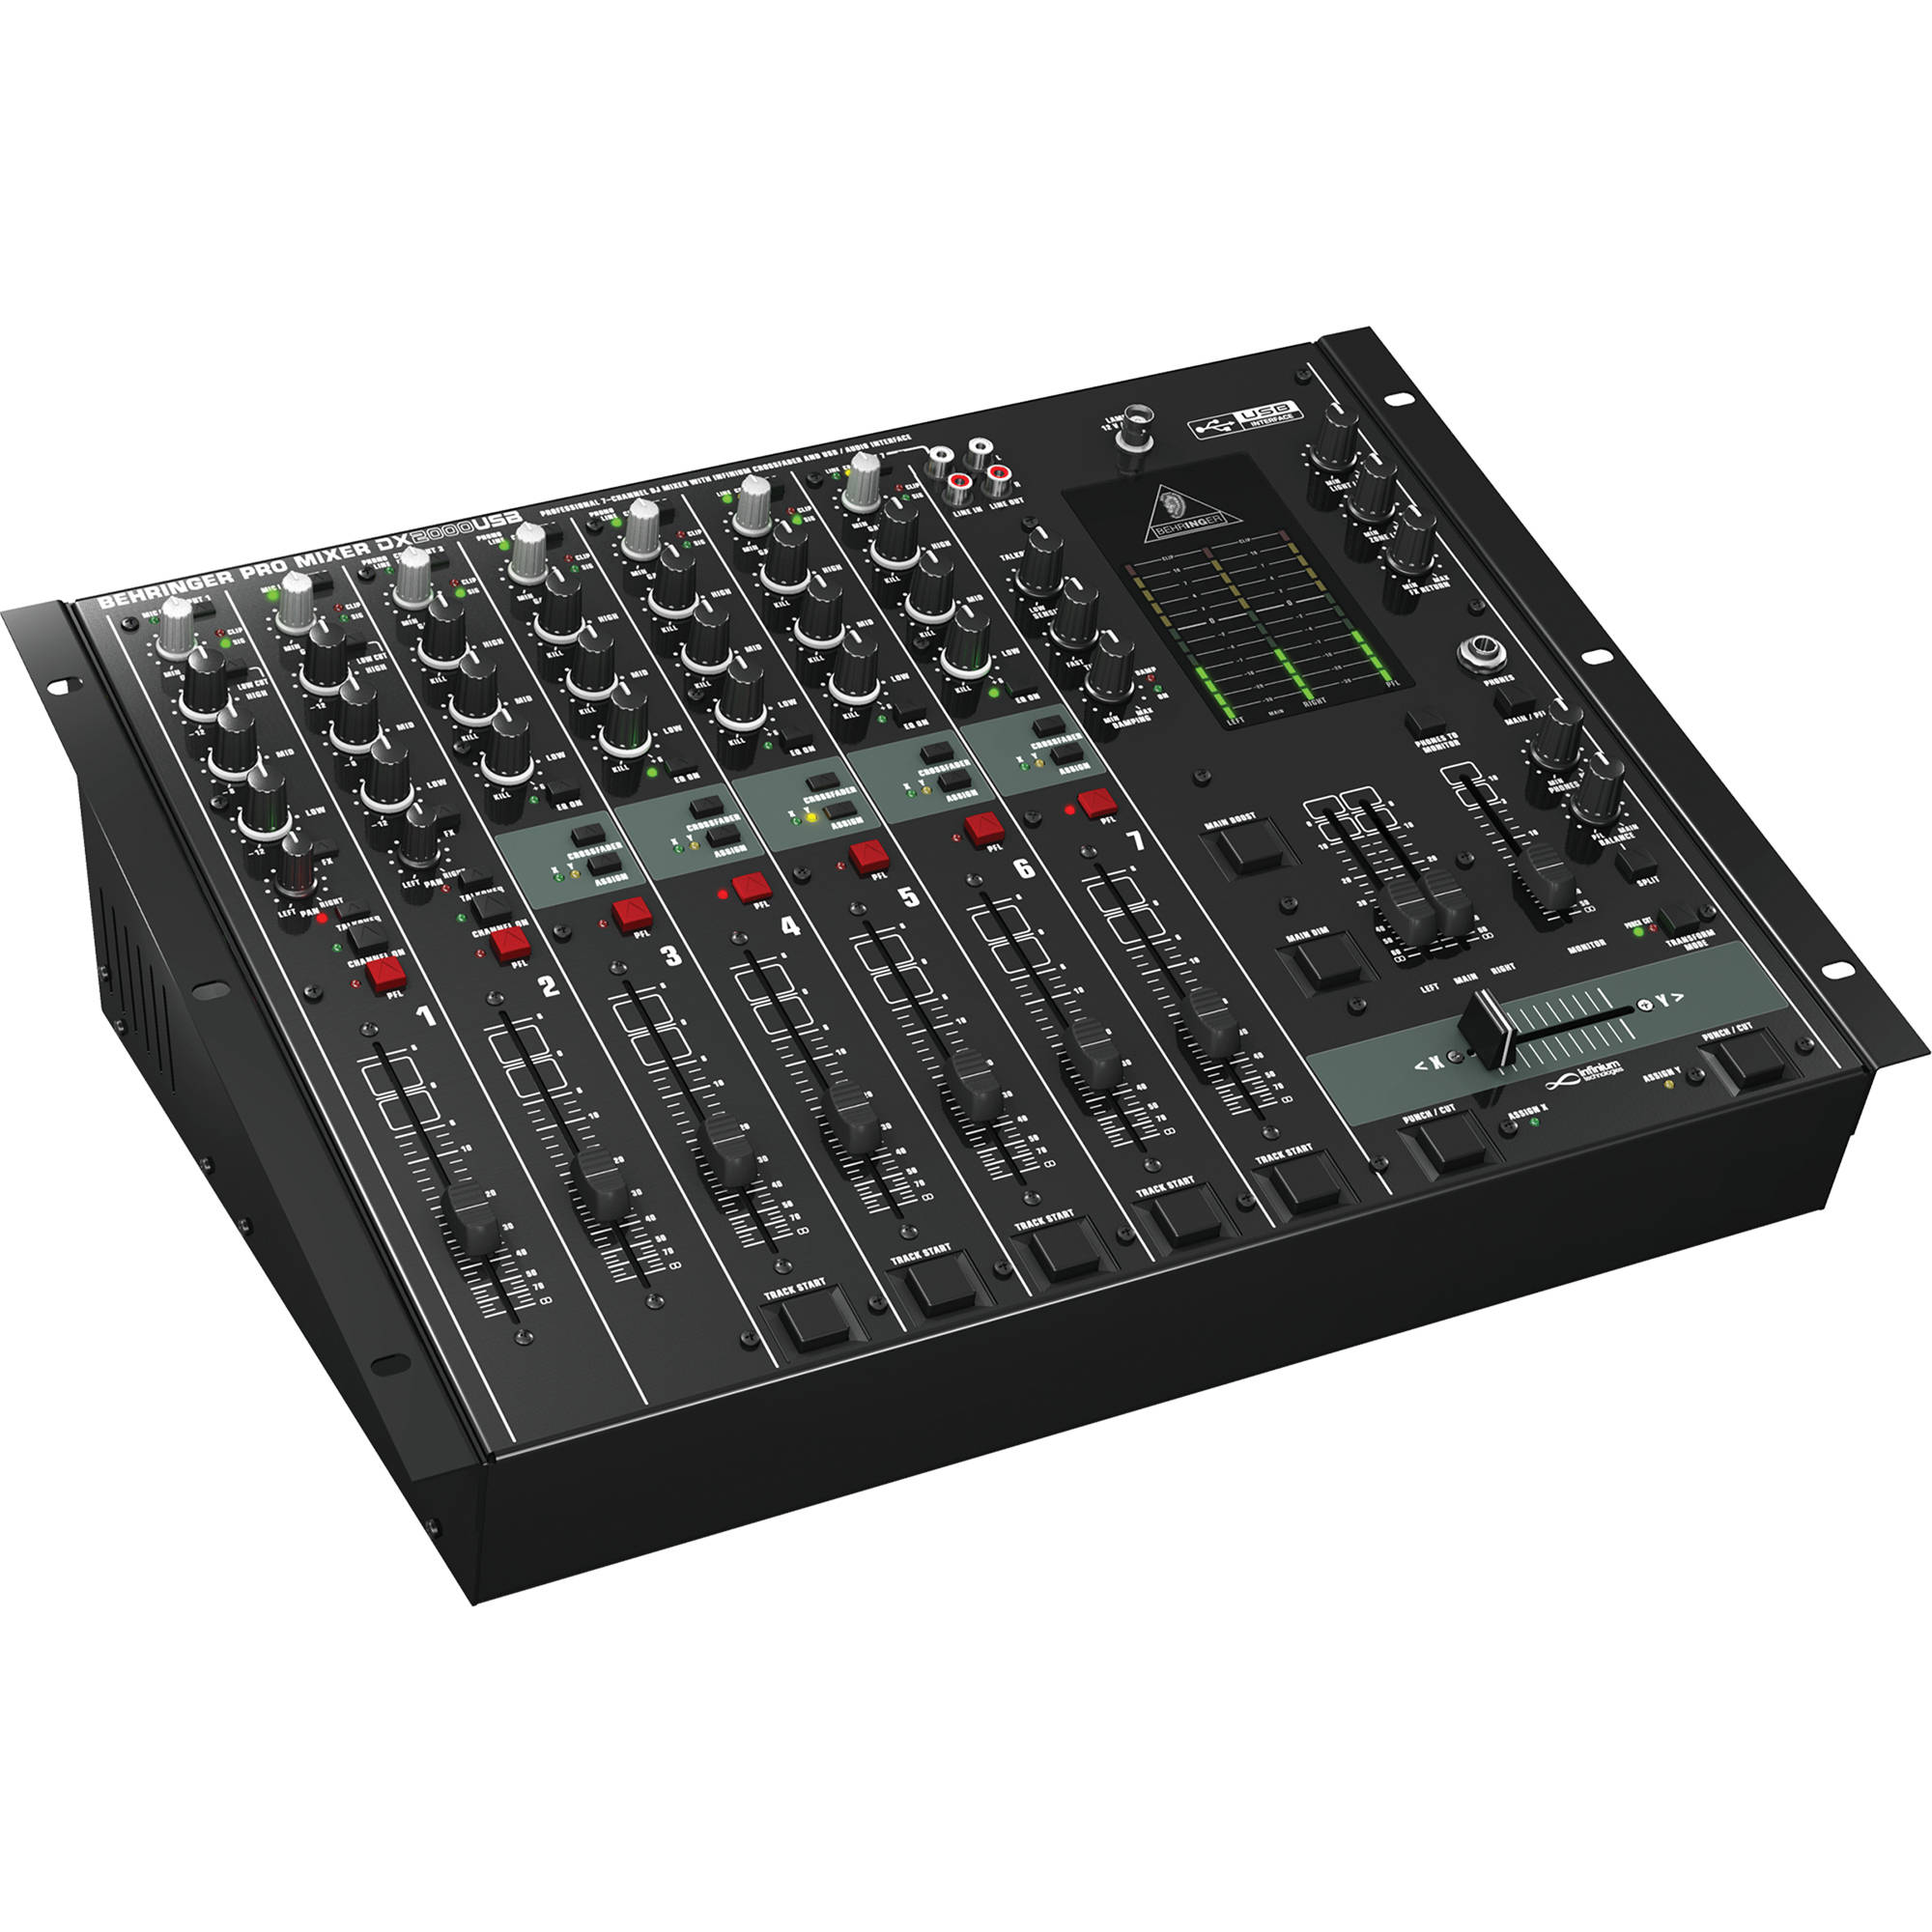 dj mixer professional - photo #20